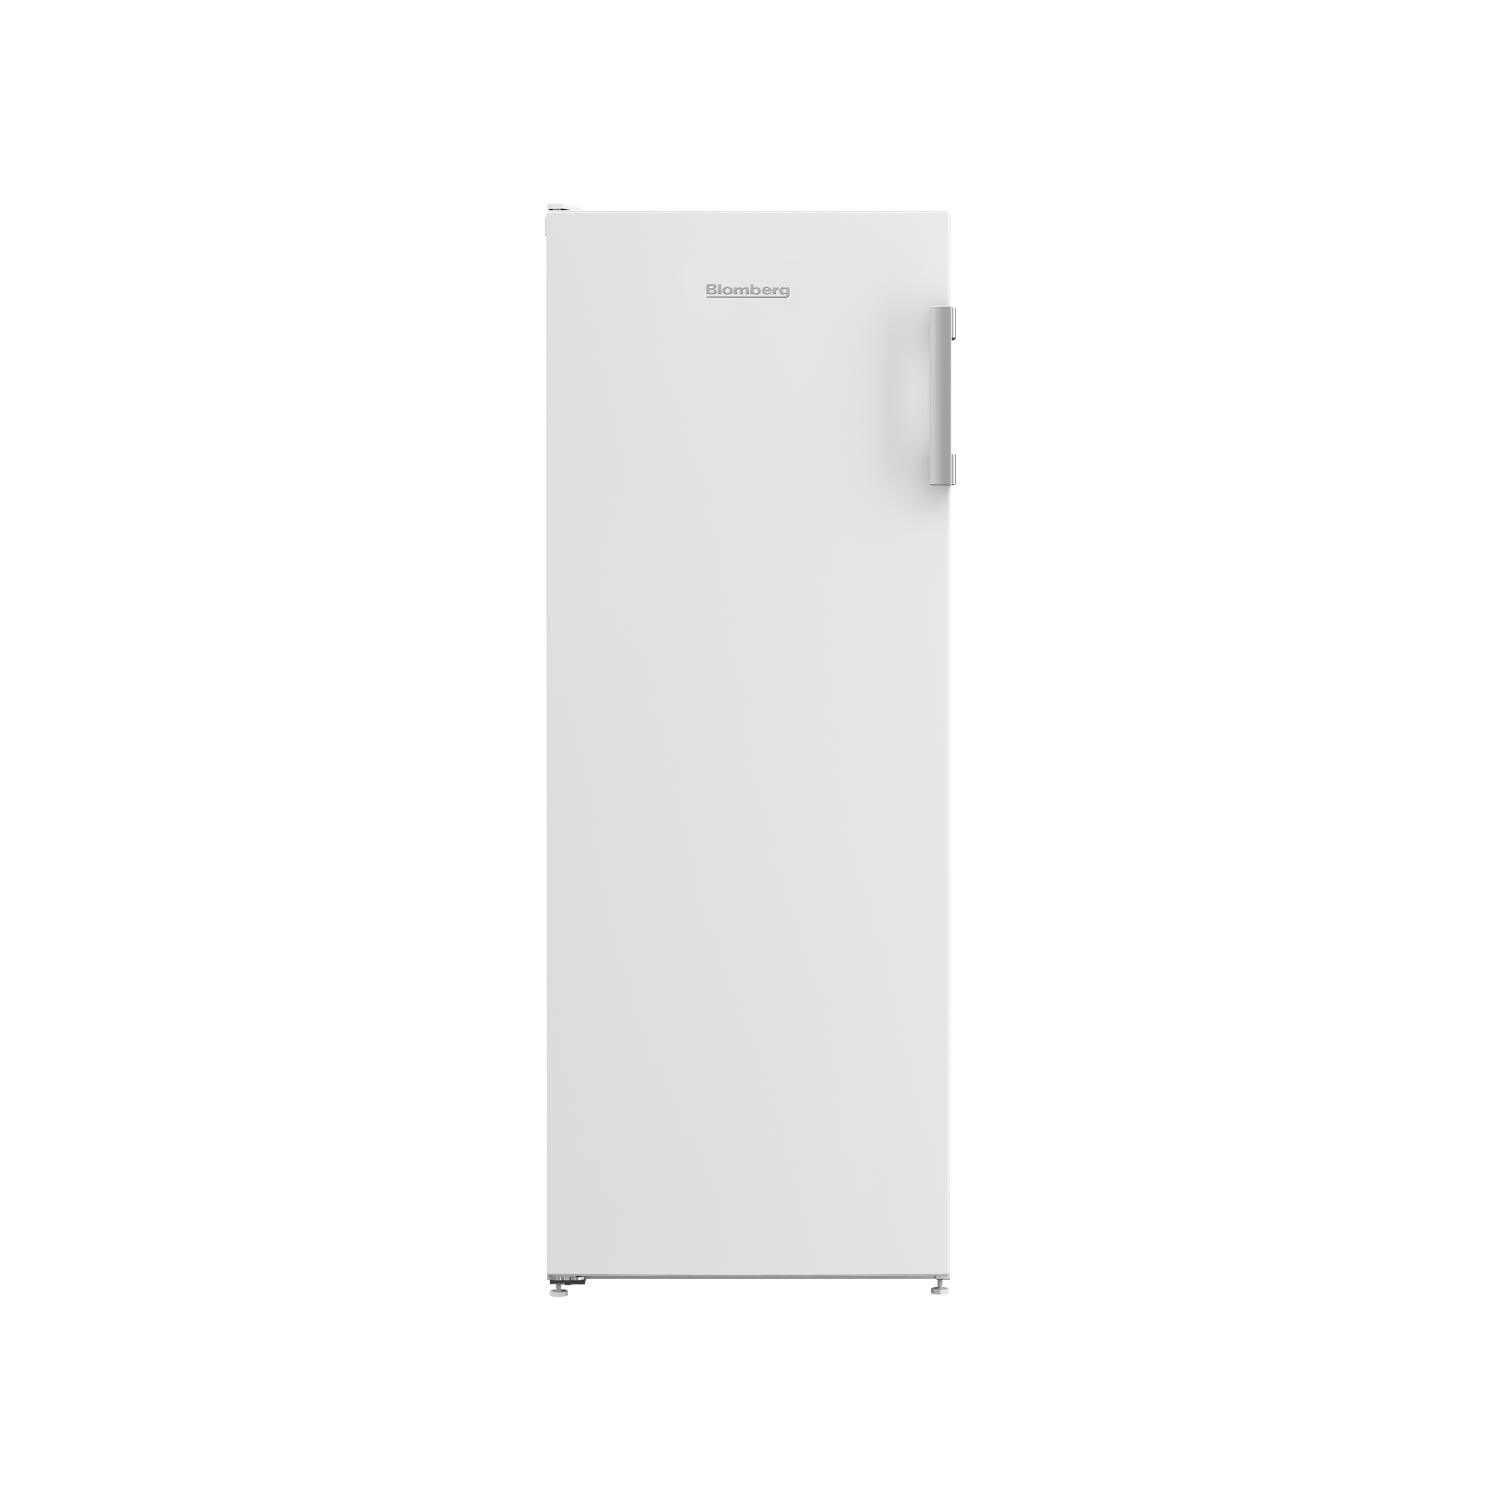 Blomberg 54.5cm Frost Free Tall Freezer - White - A+ Rated - 1